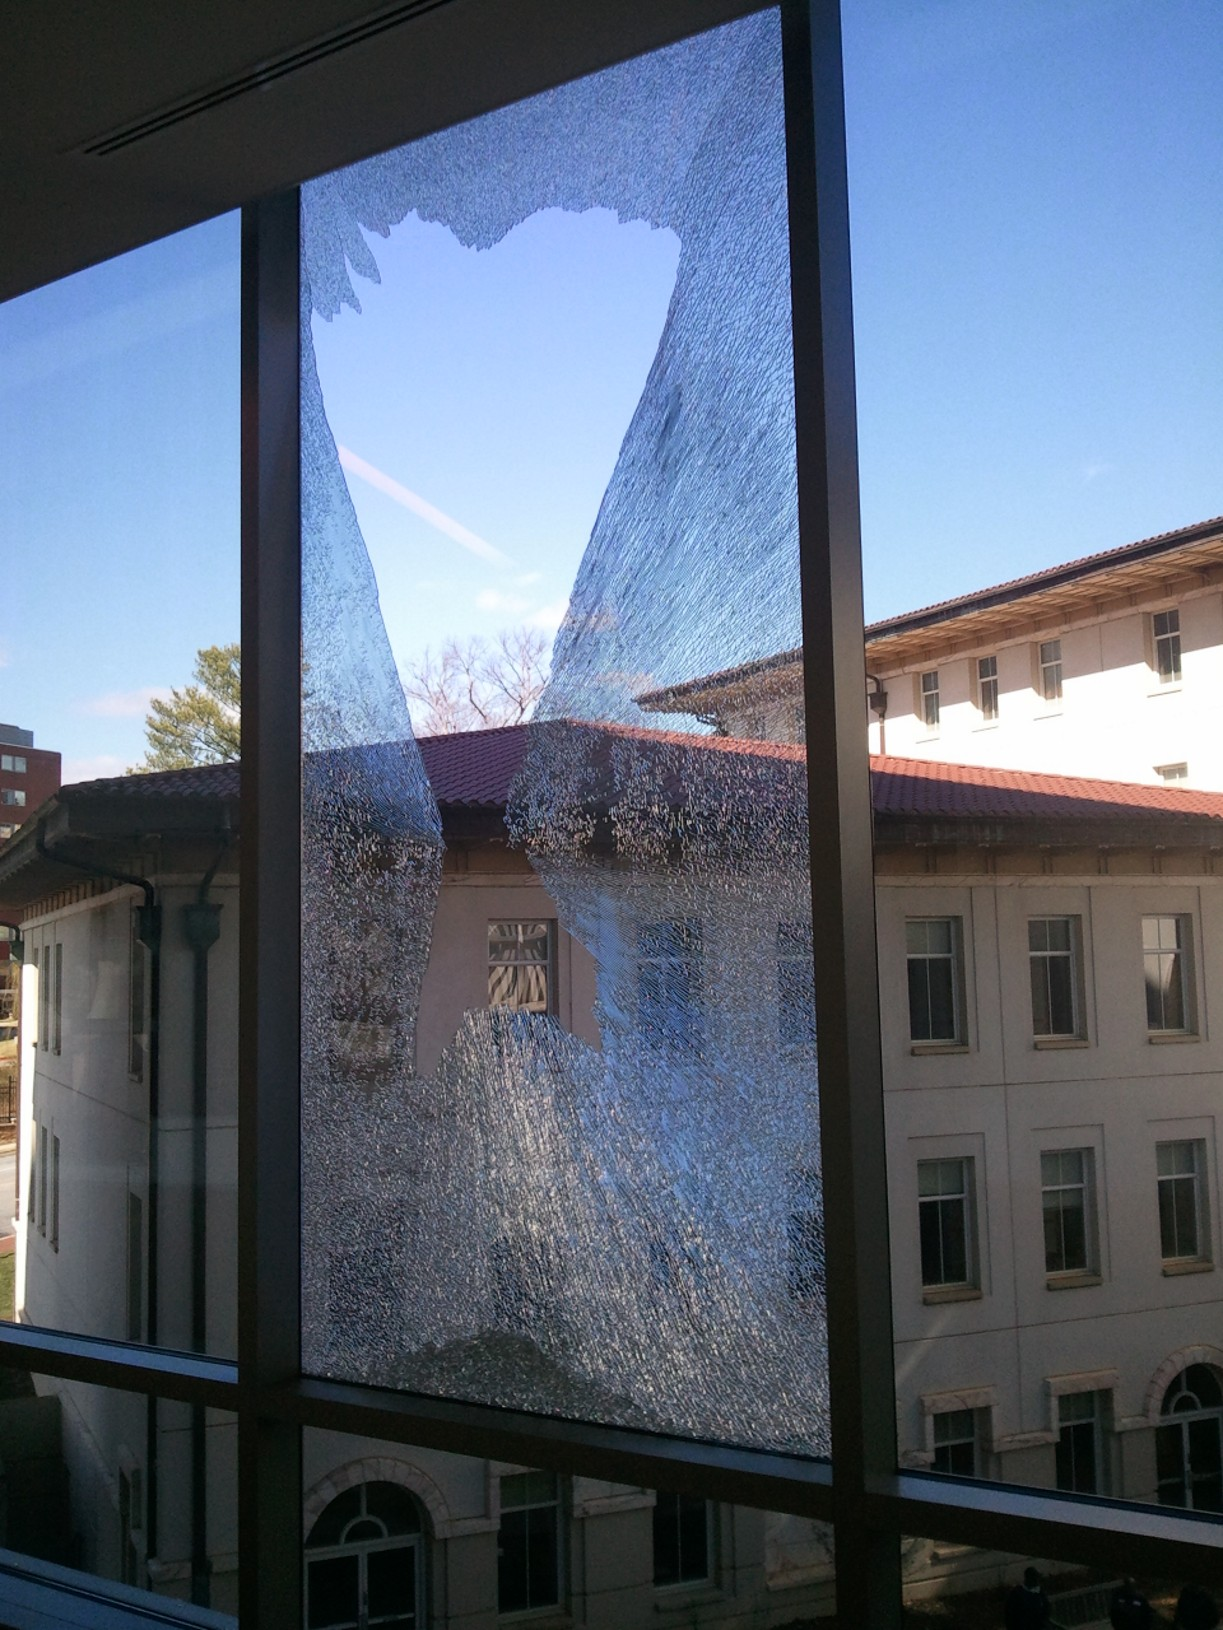 With An Increase In Spontaneous Glass Breakage Incidents The Glazing Industry Is Looking At New Ways To Make Assemblies Safer